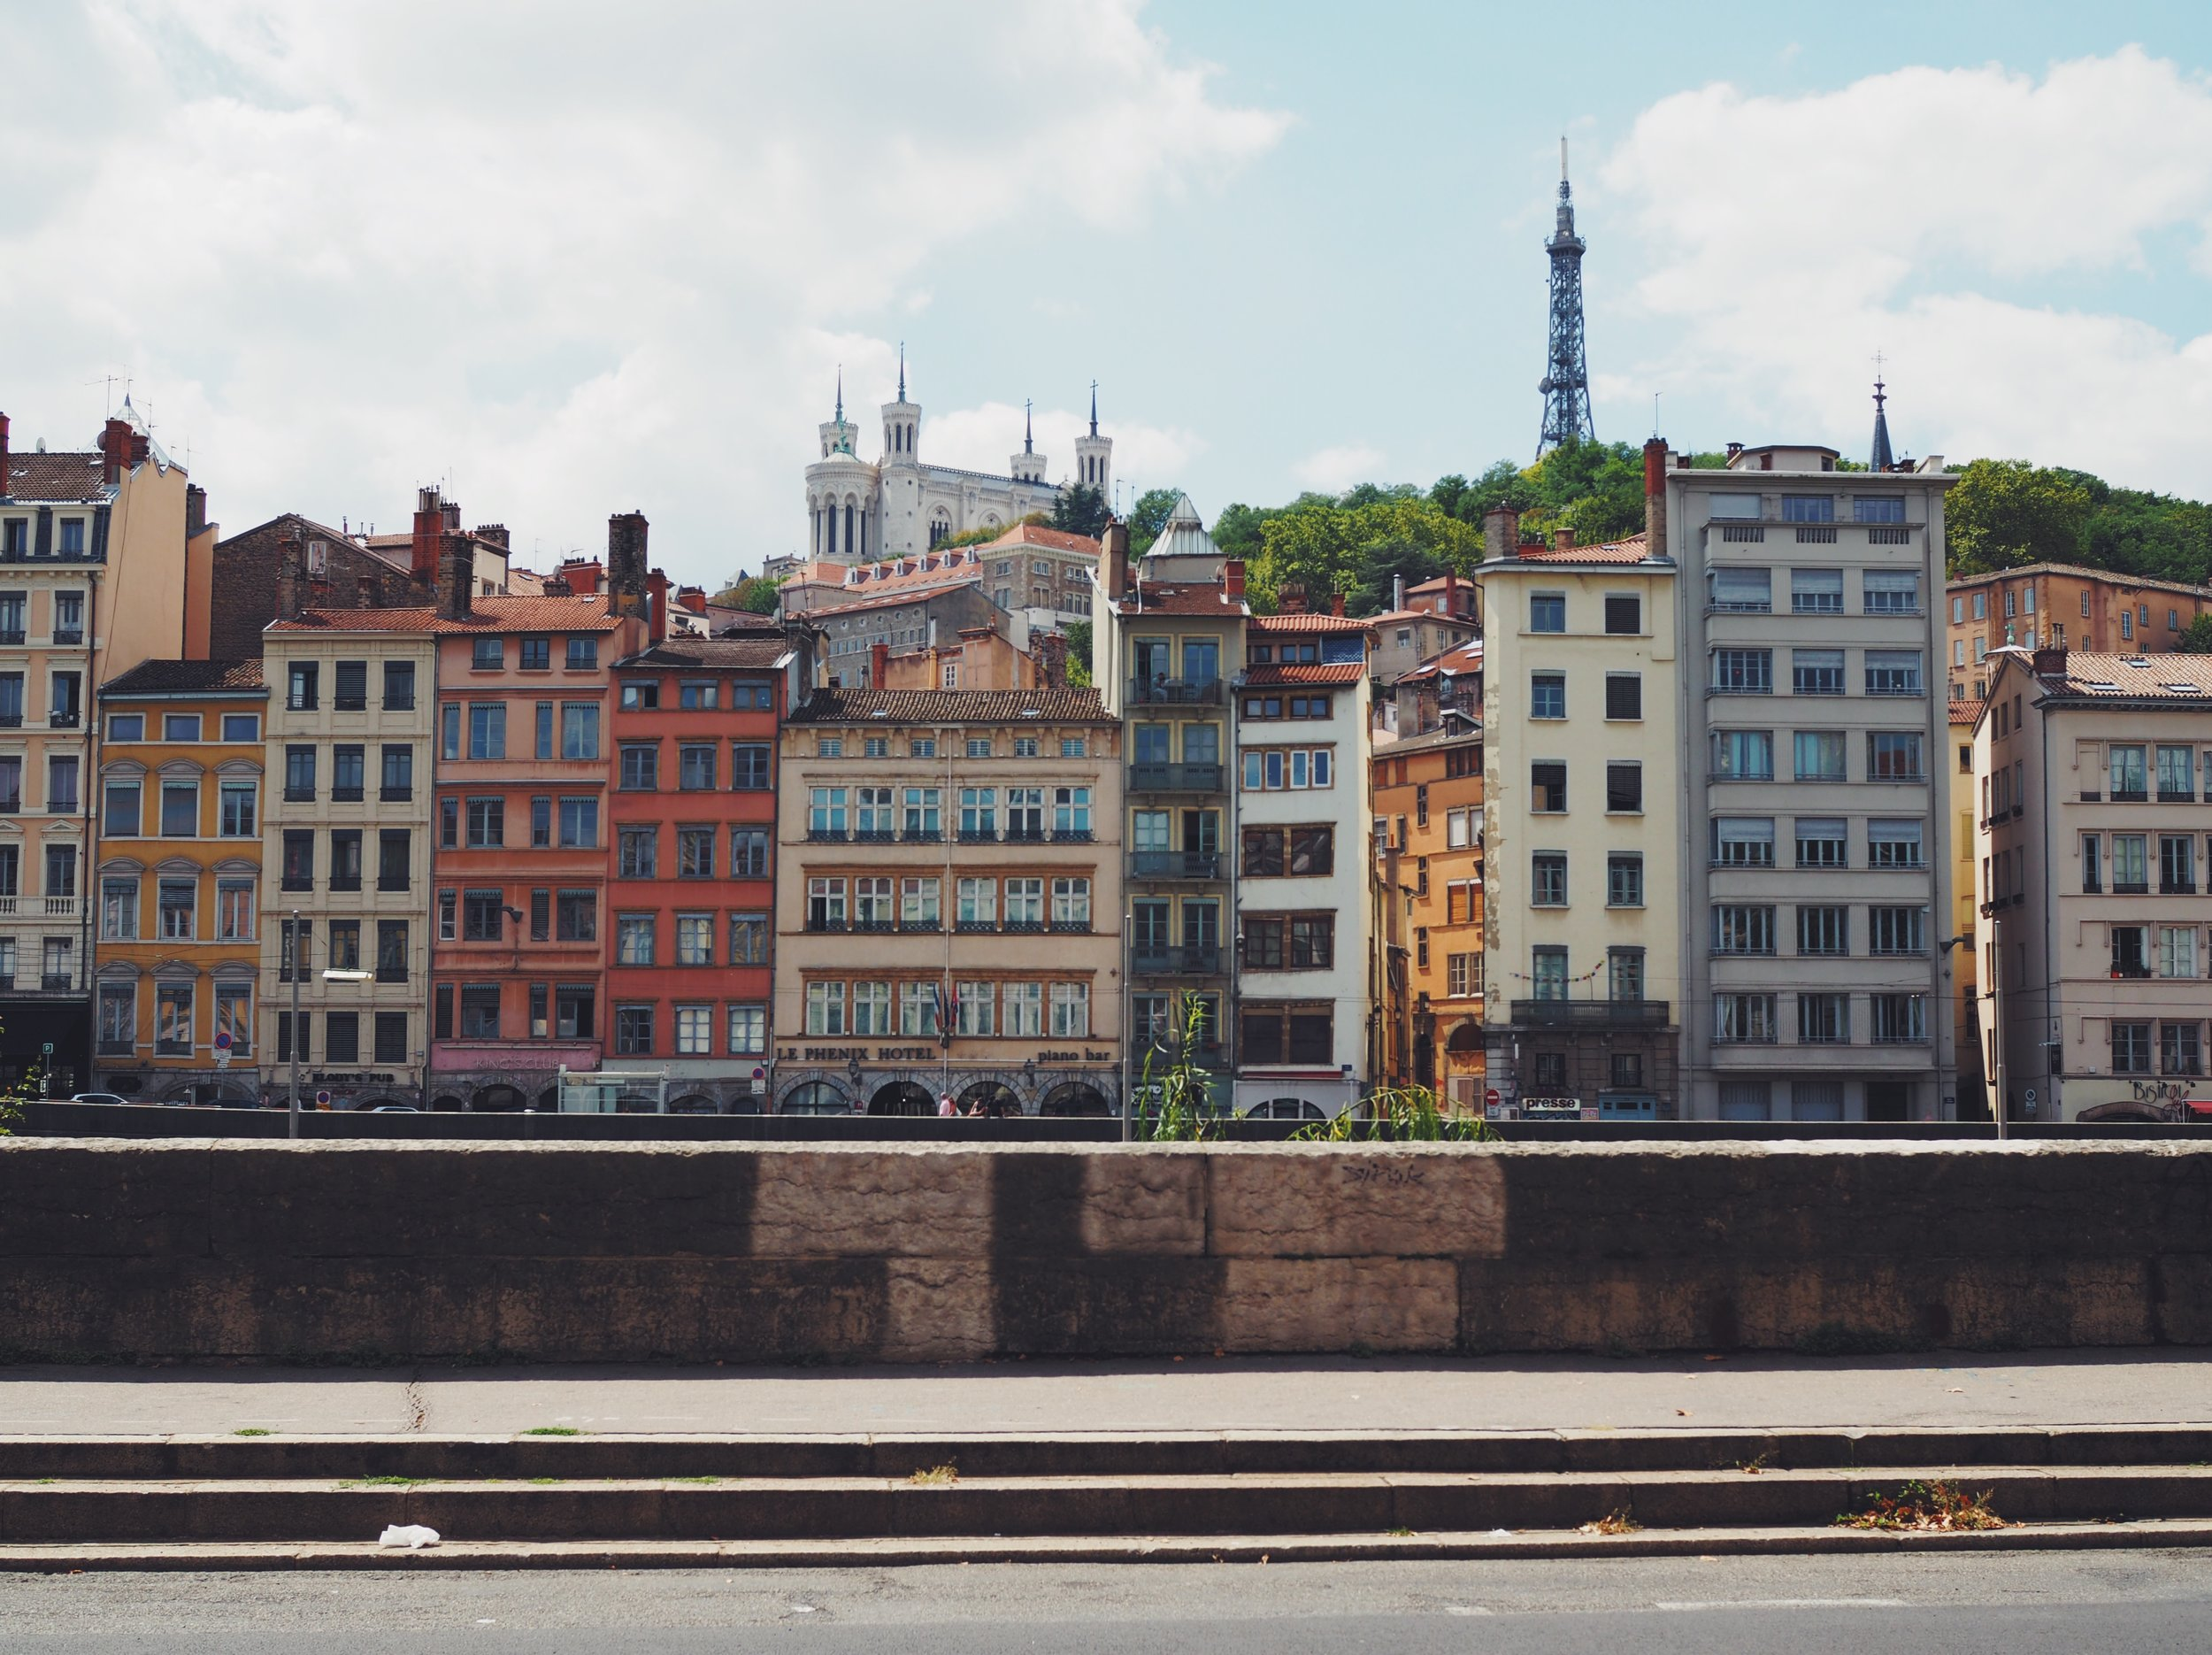 Across from Vieux Lyon